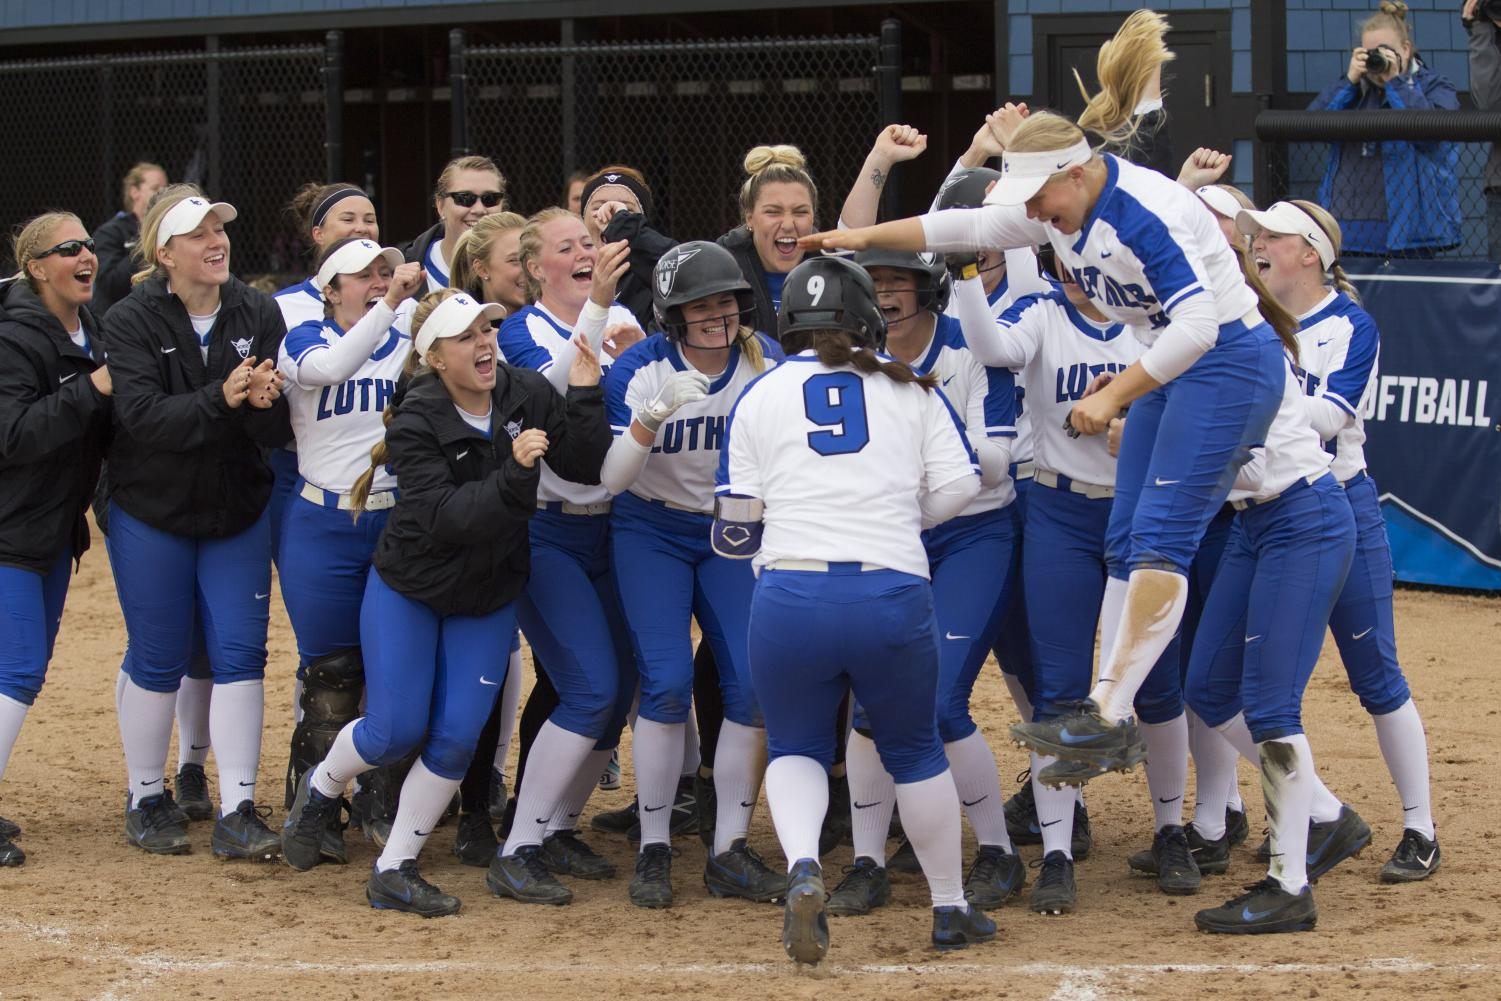 Softball celebrates after their win.